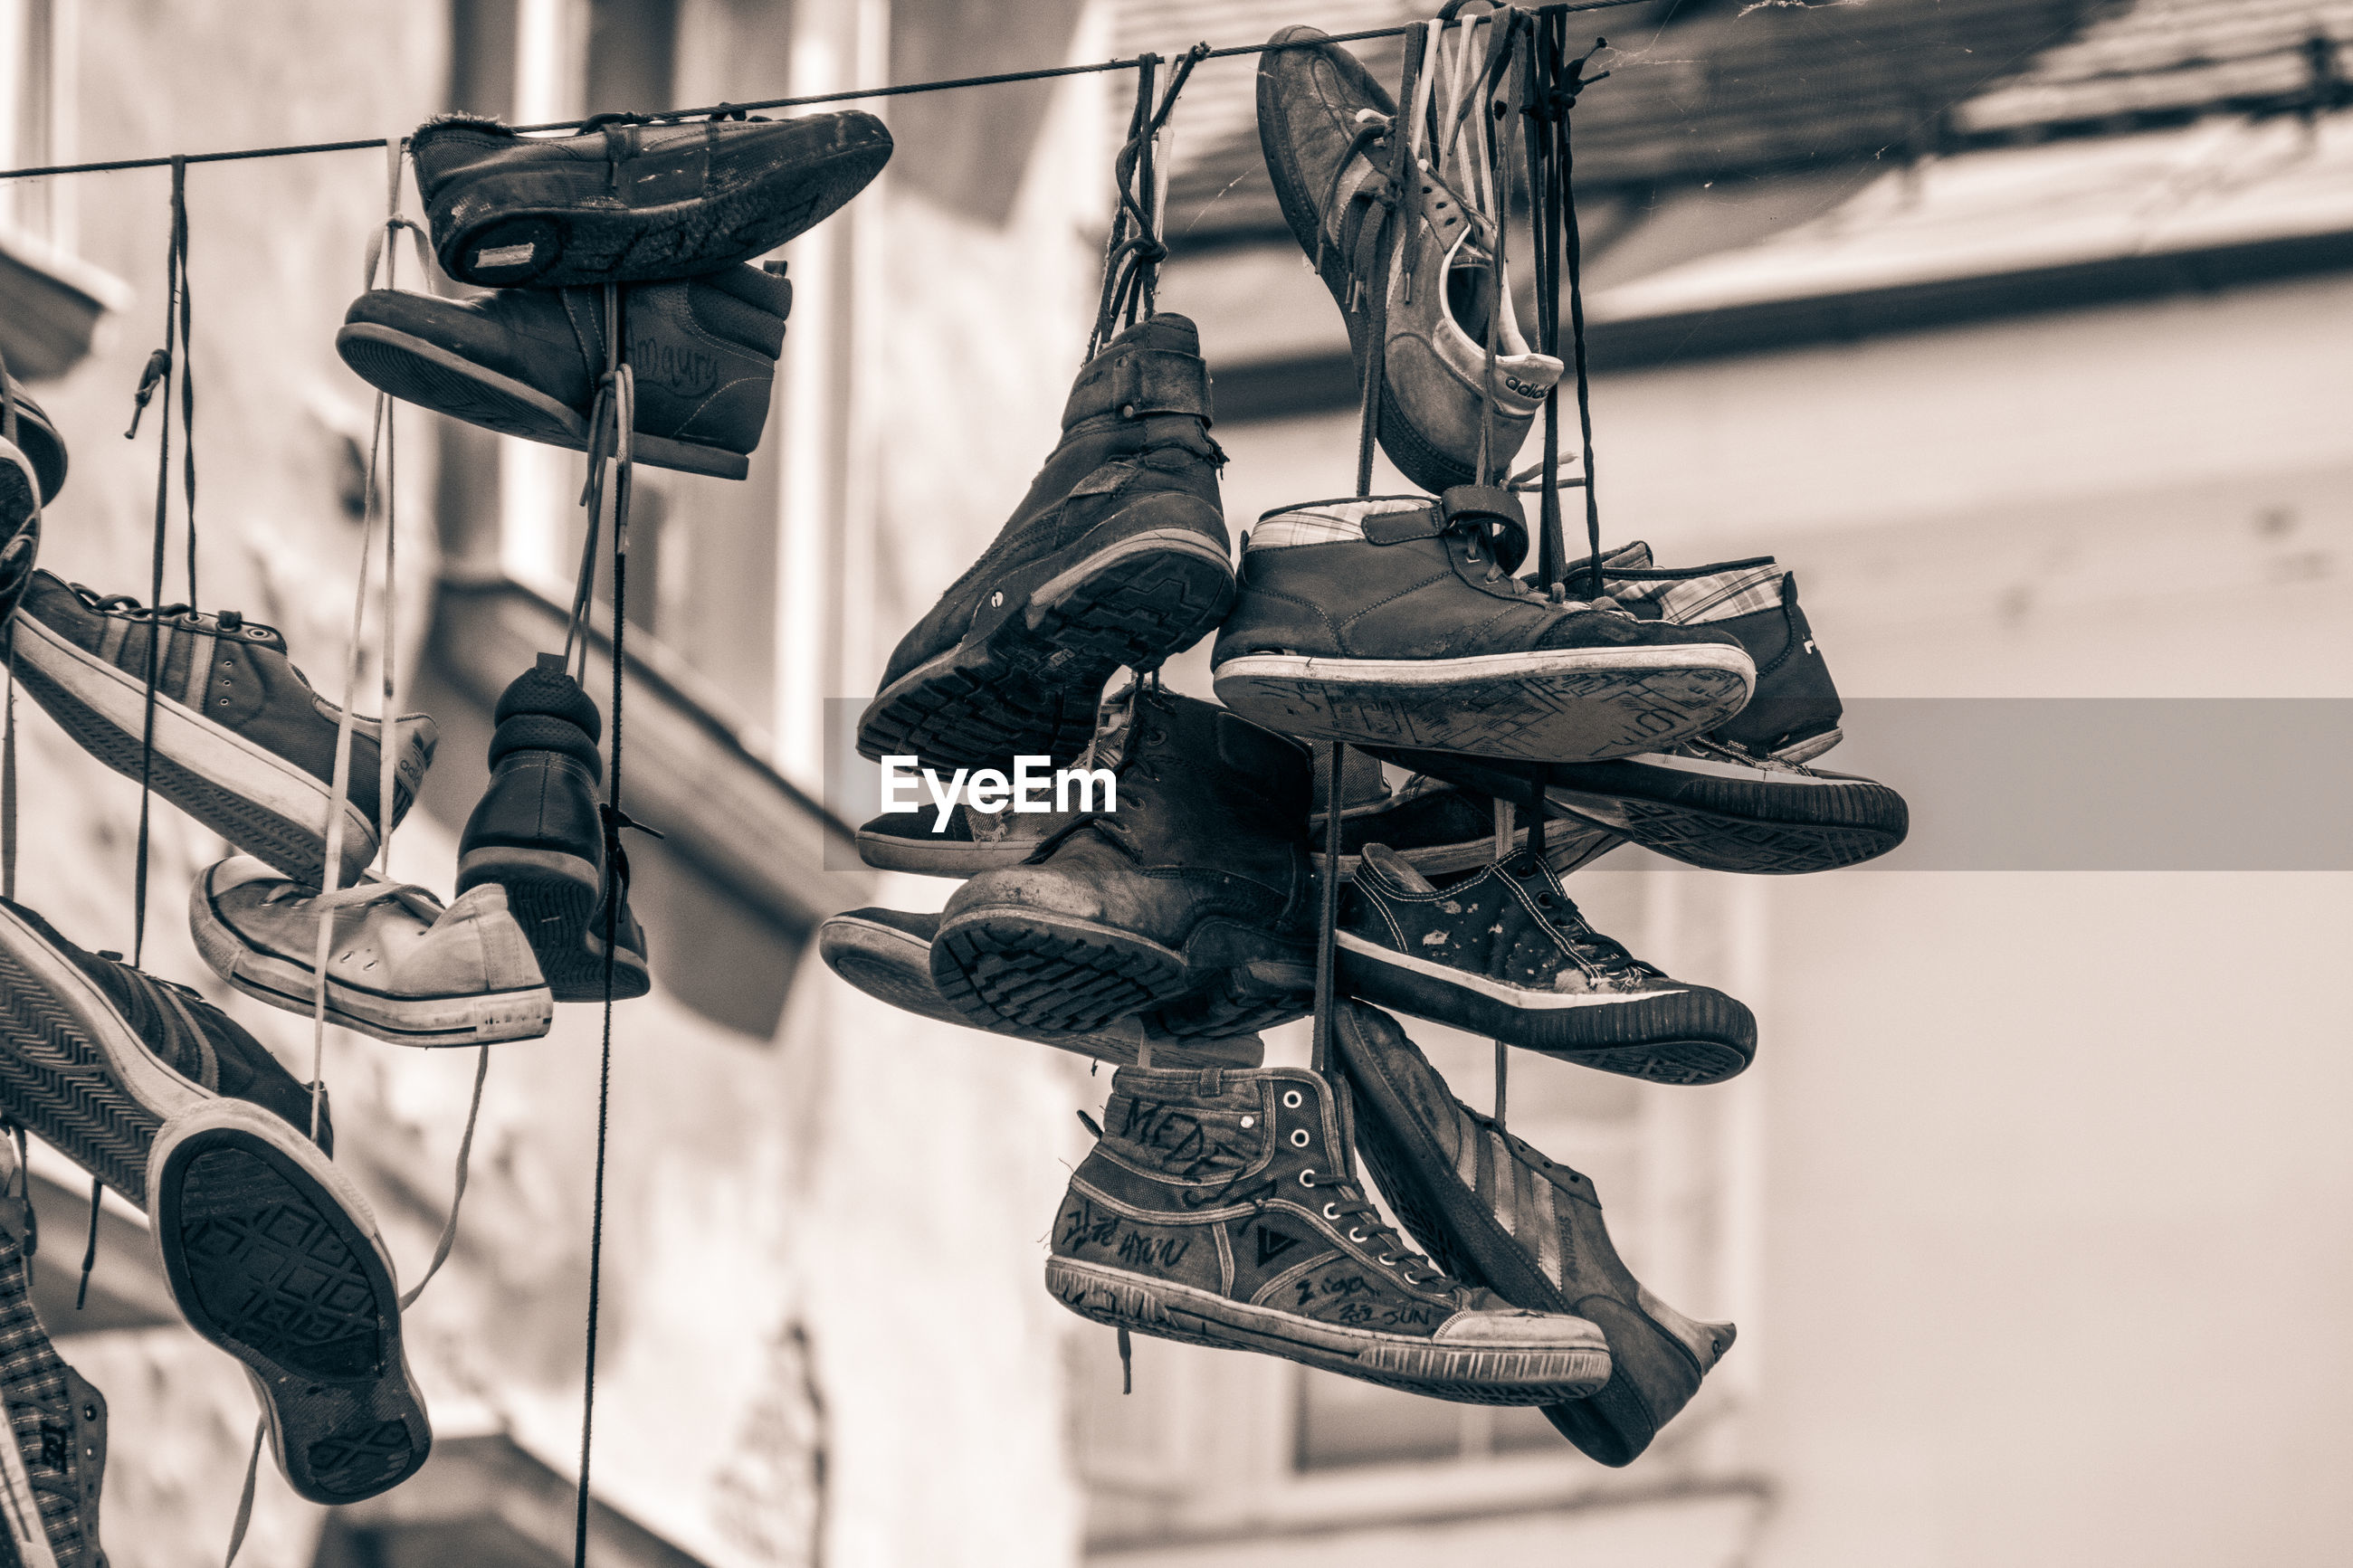 LOW ANGLE VIEW OF SHOES HANGING ON METAL AGAINST THE SKY